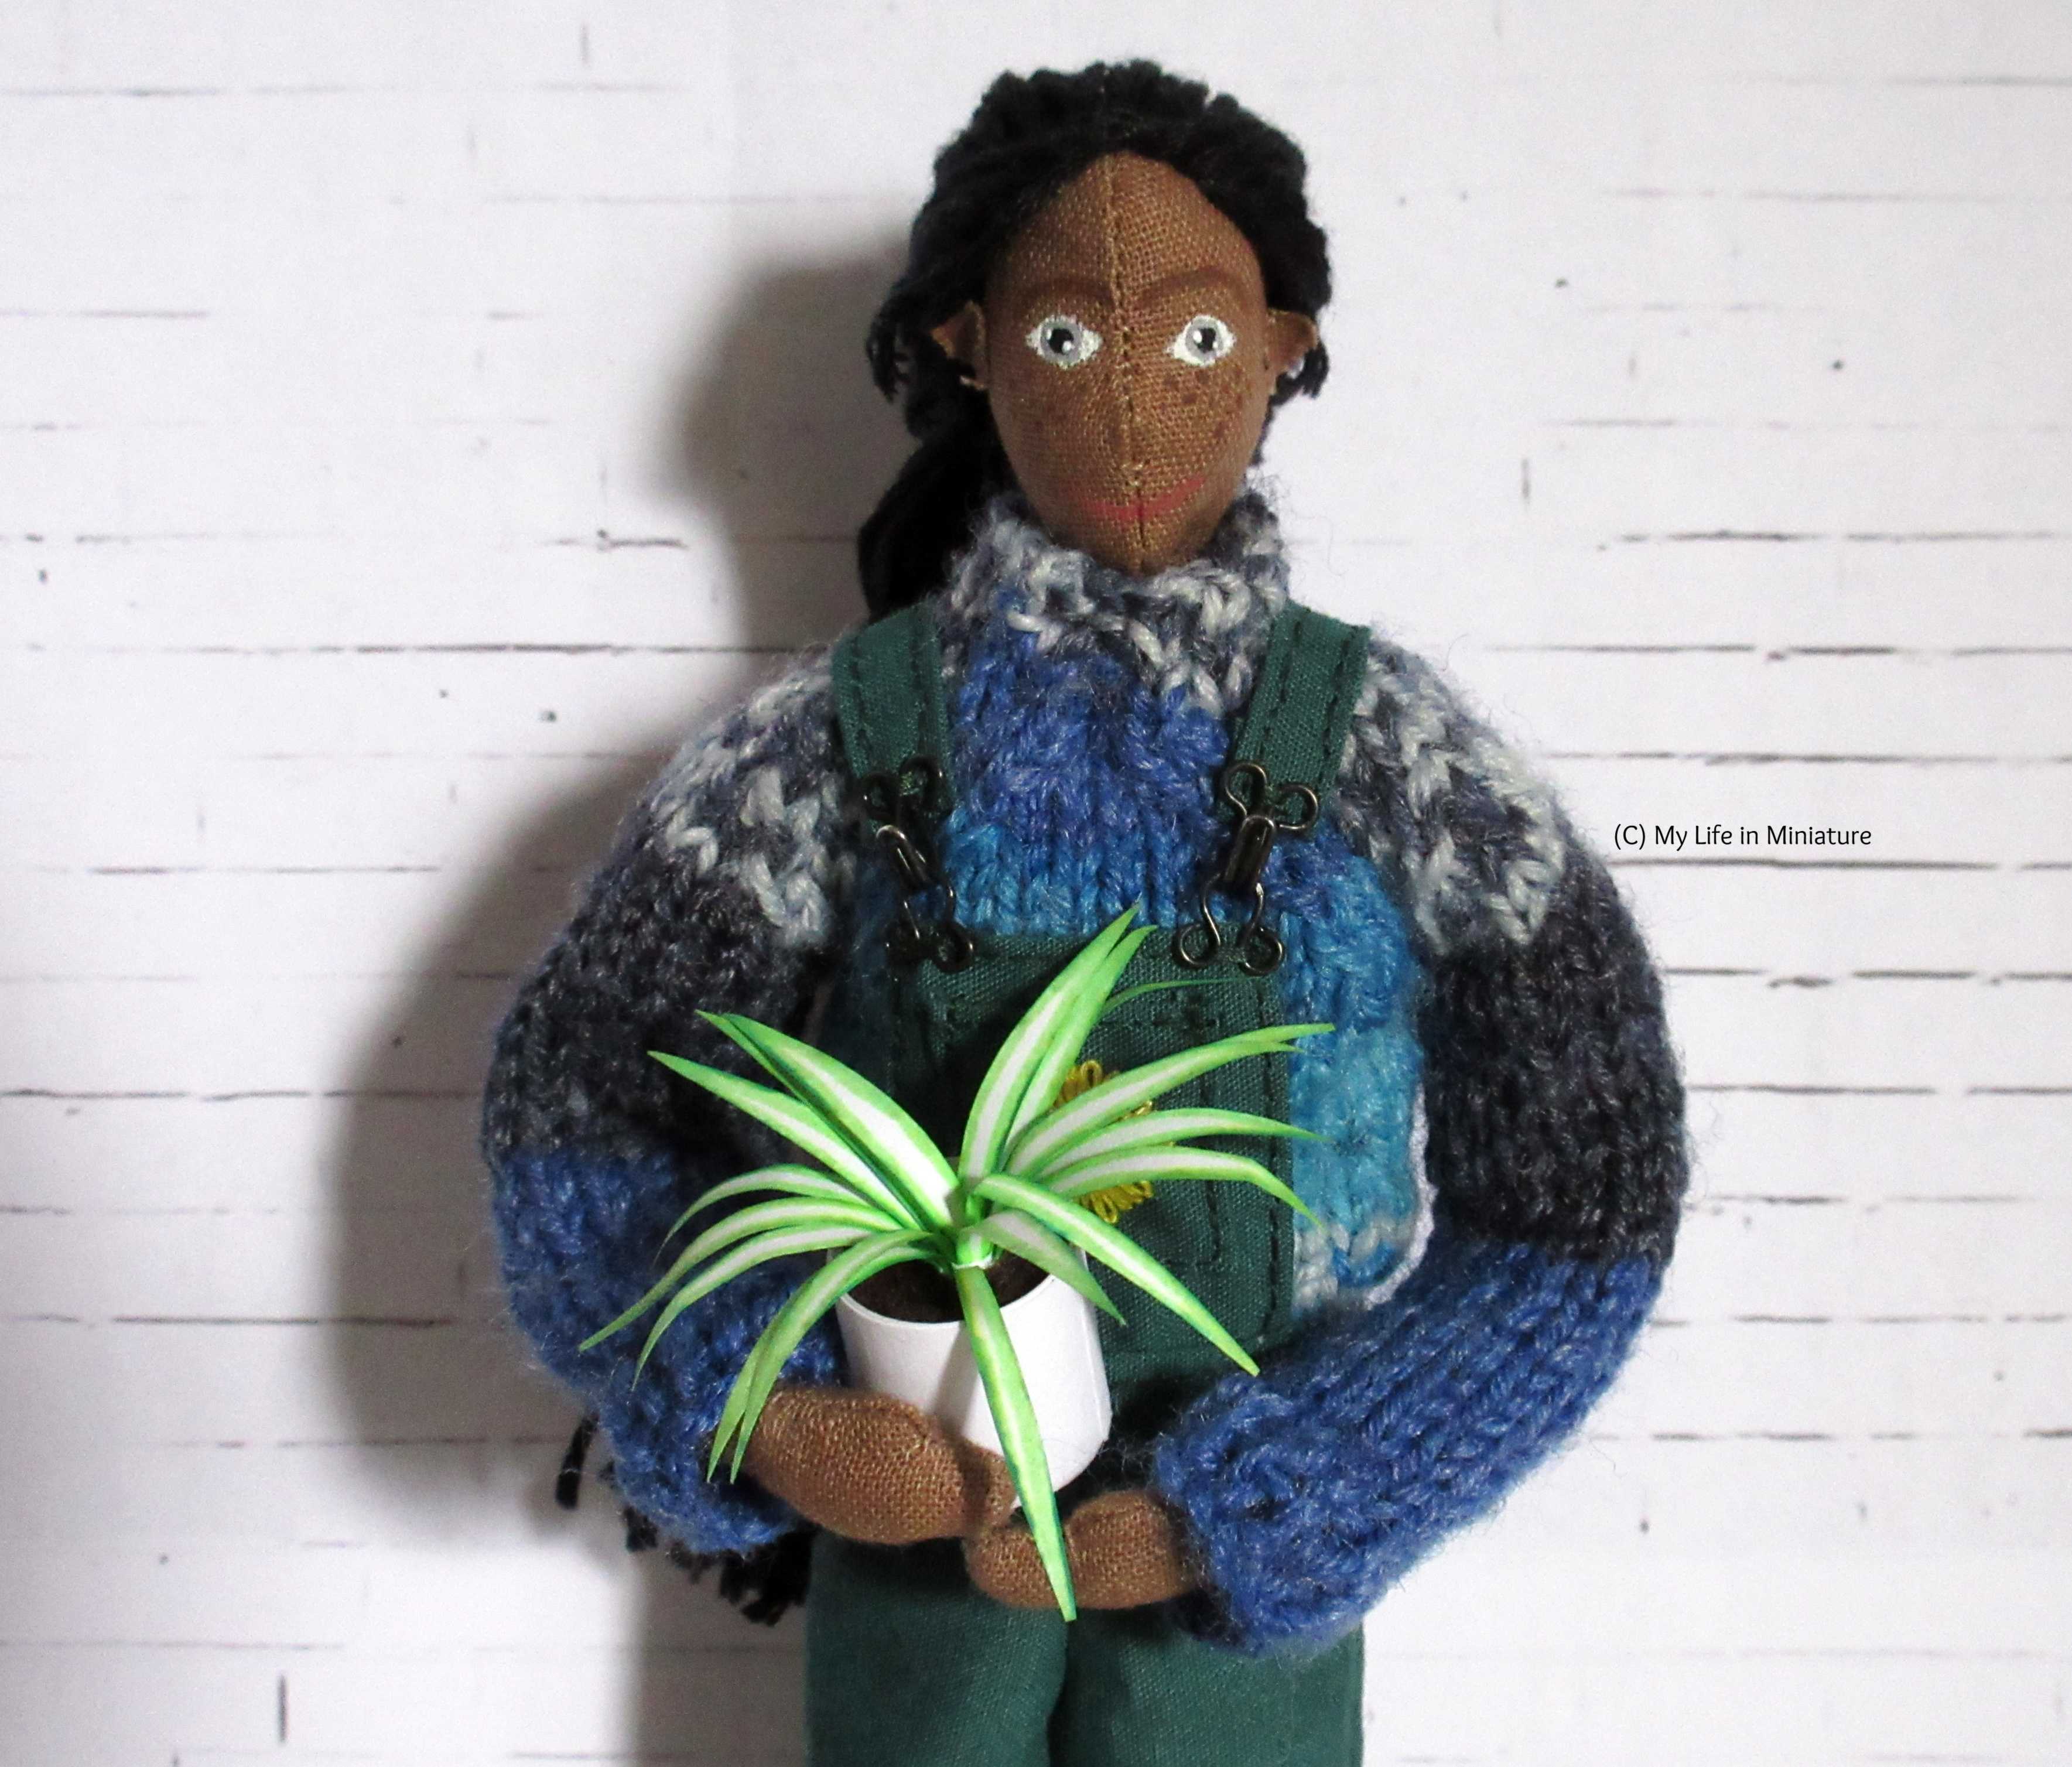 Petra holds a spider-plant wearing the dungarees and jumper, smiling at the camera.